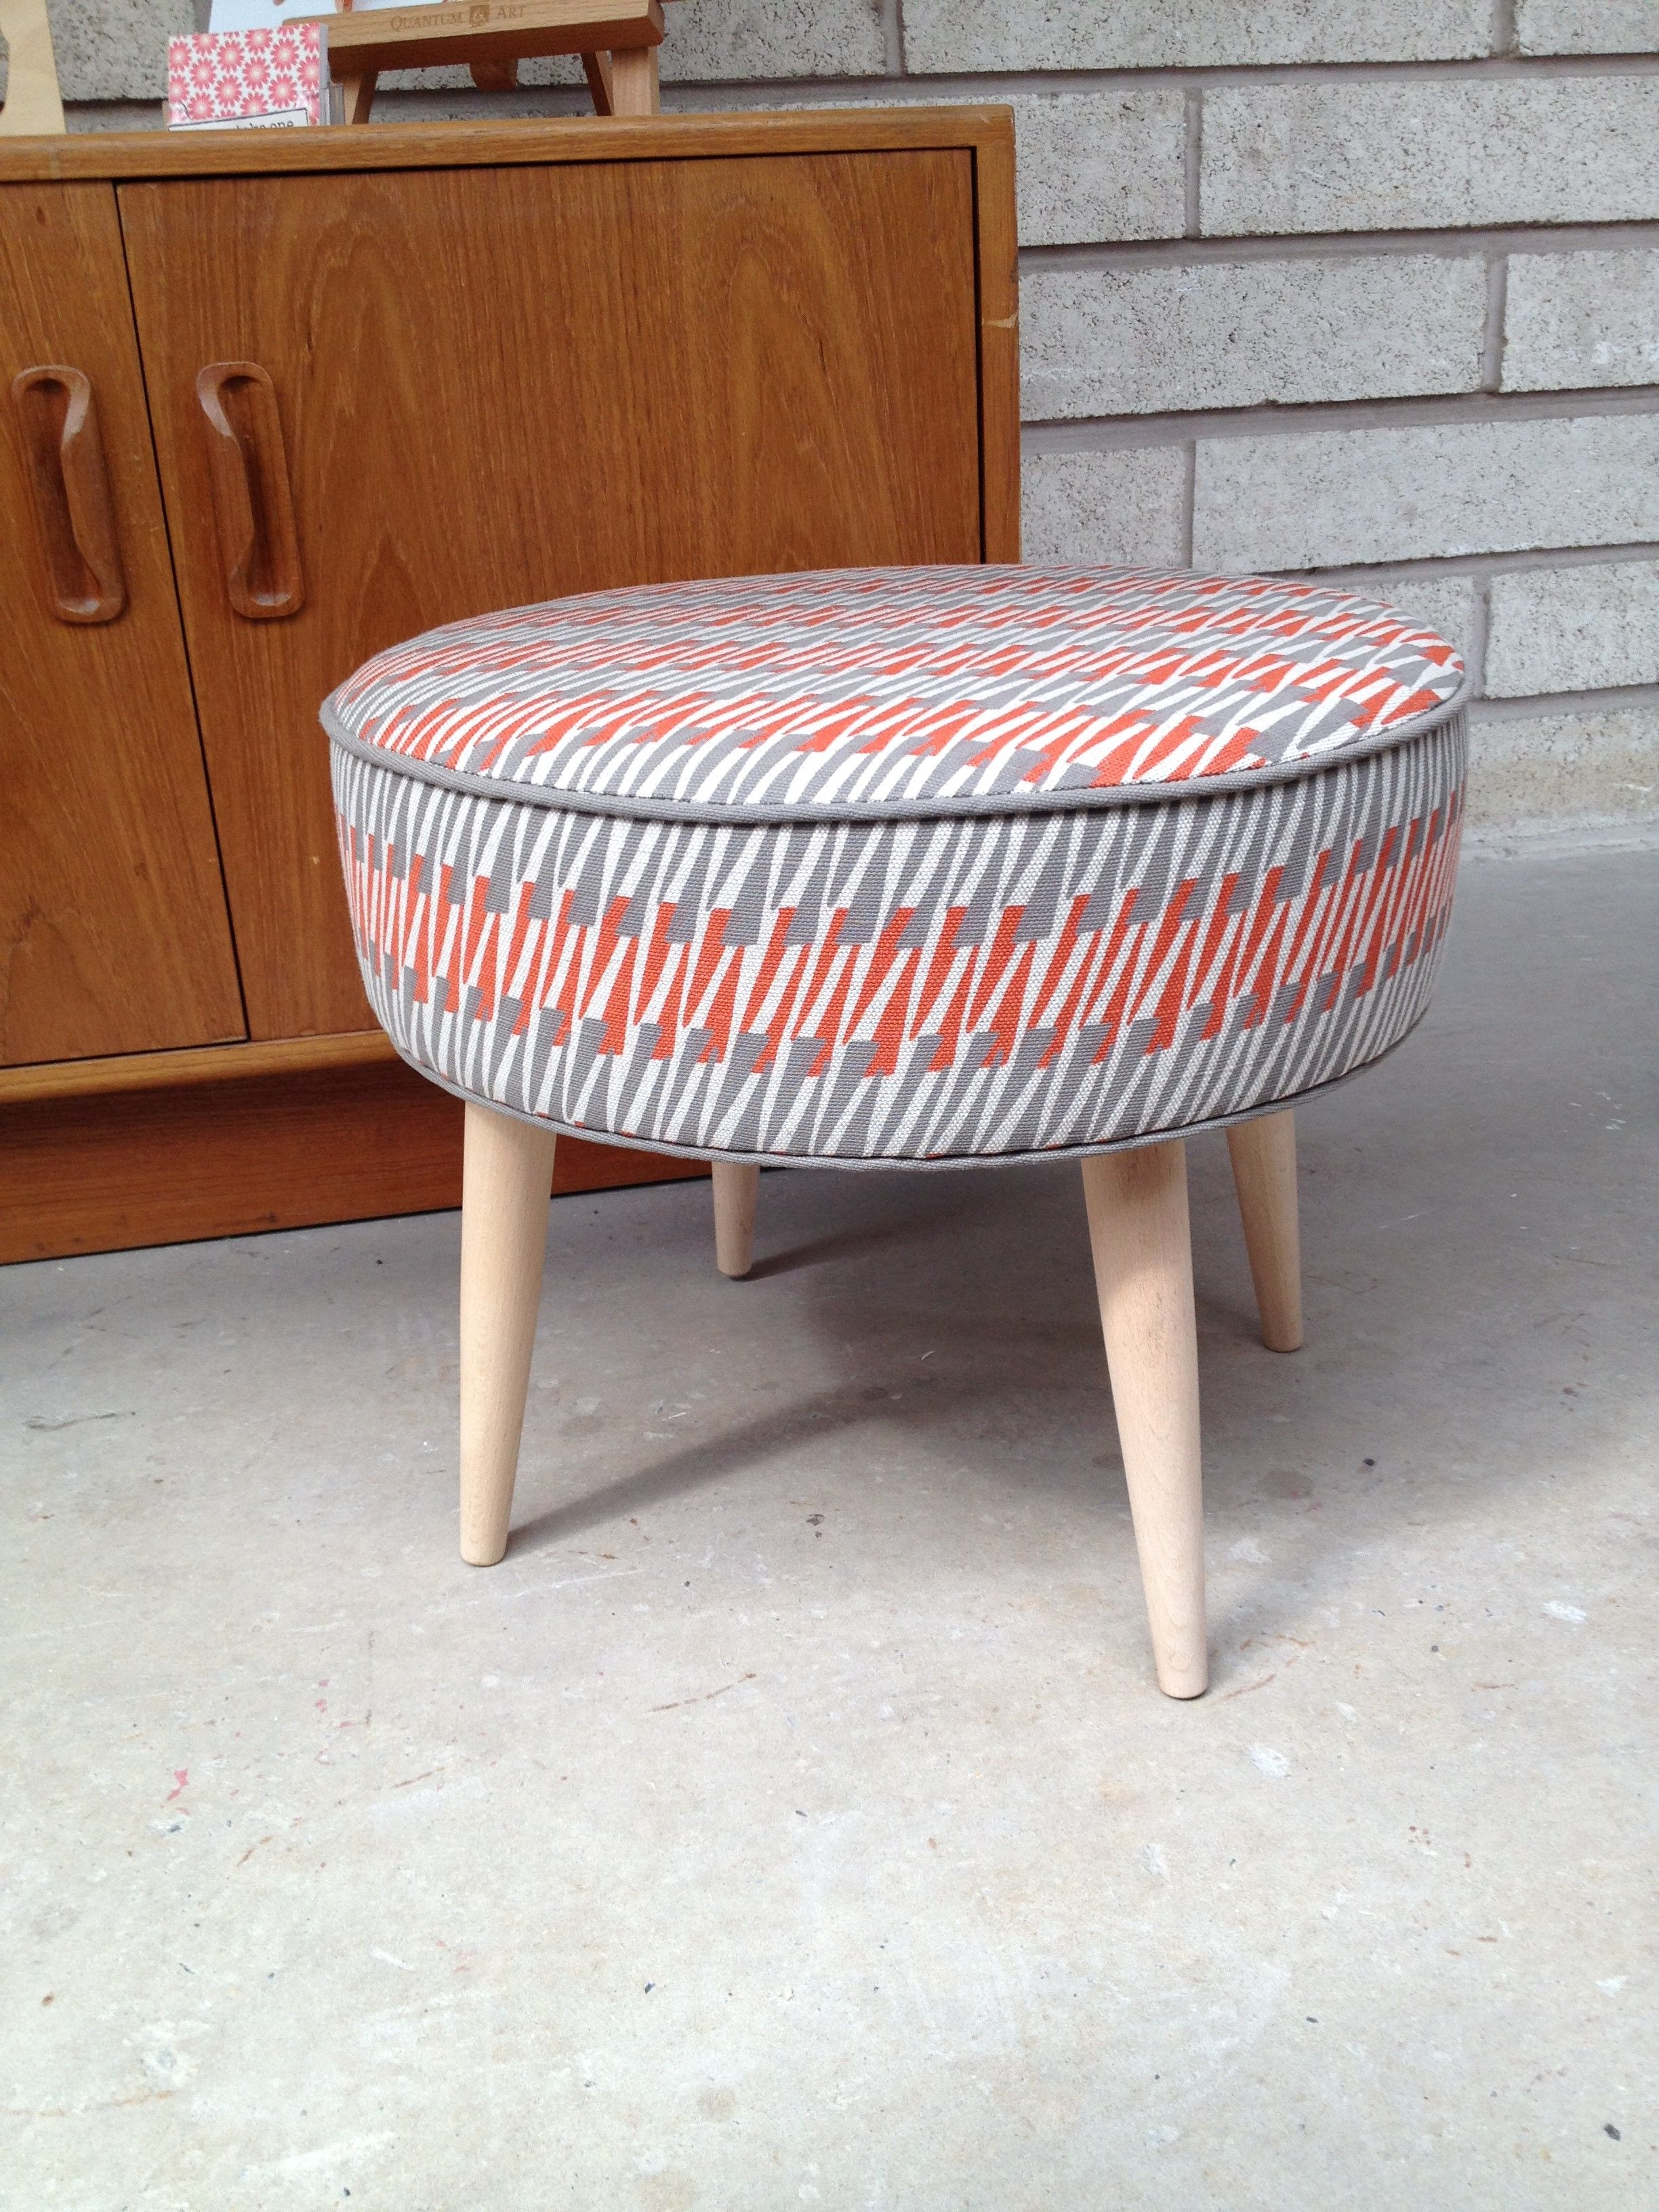 Footstool covered in Sarah Waterhouse fabric, which made an appearance at the London Design Festival 2014 in David Mellor's flagship shop in Sloane Square, London.